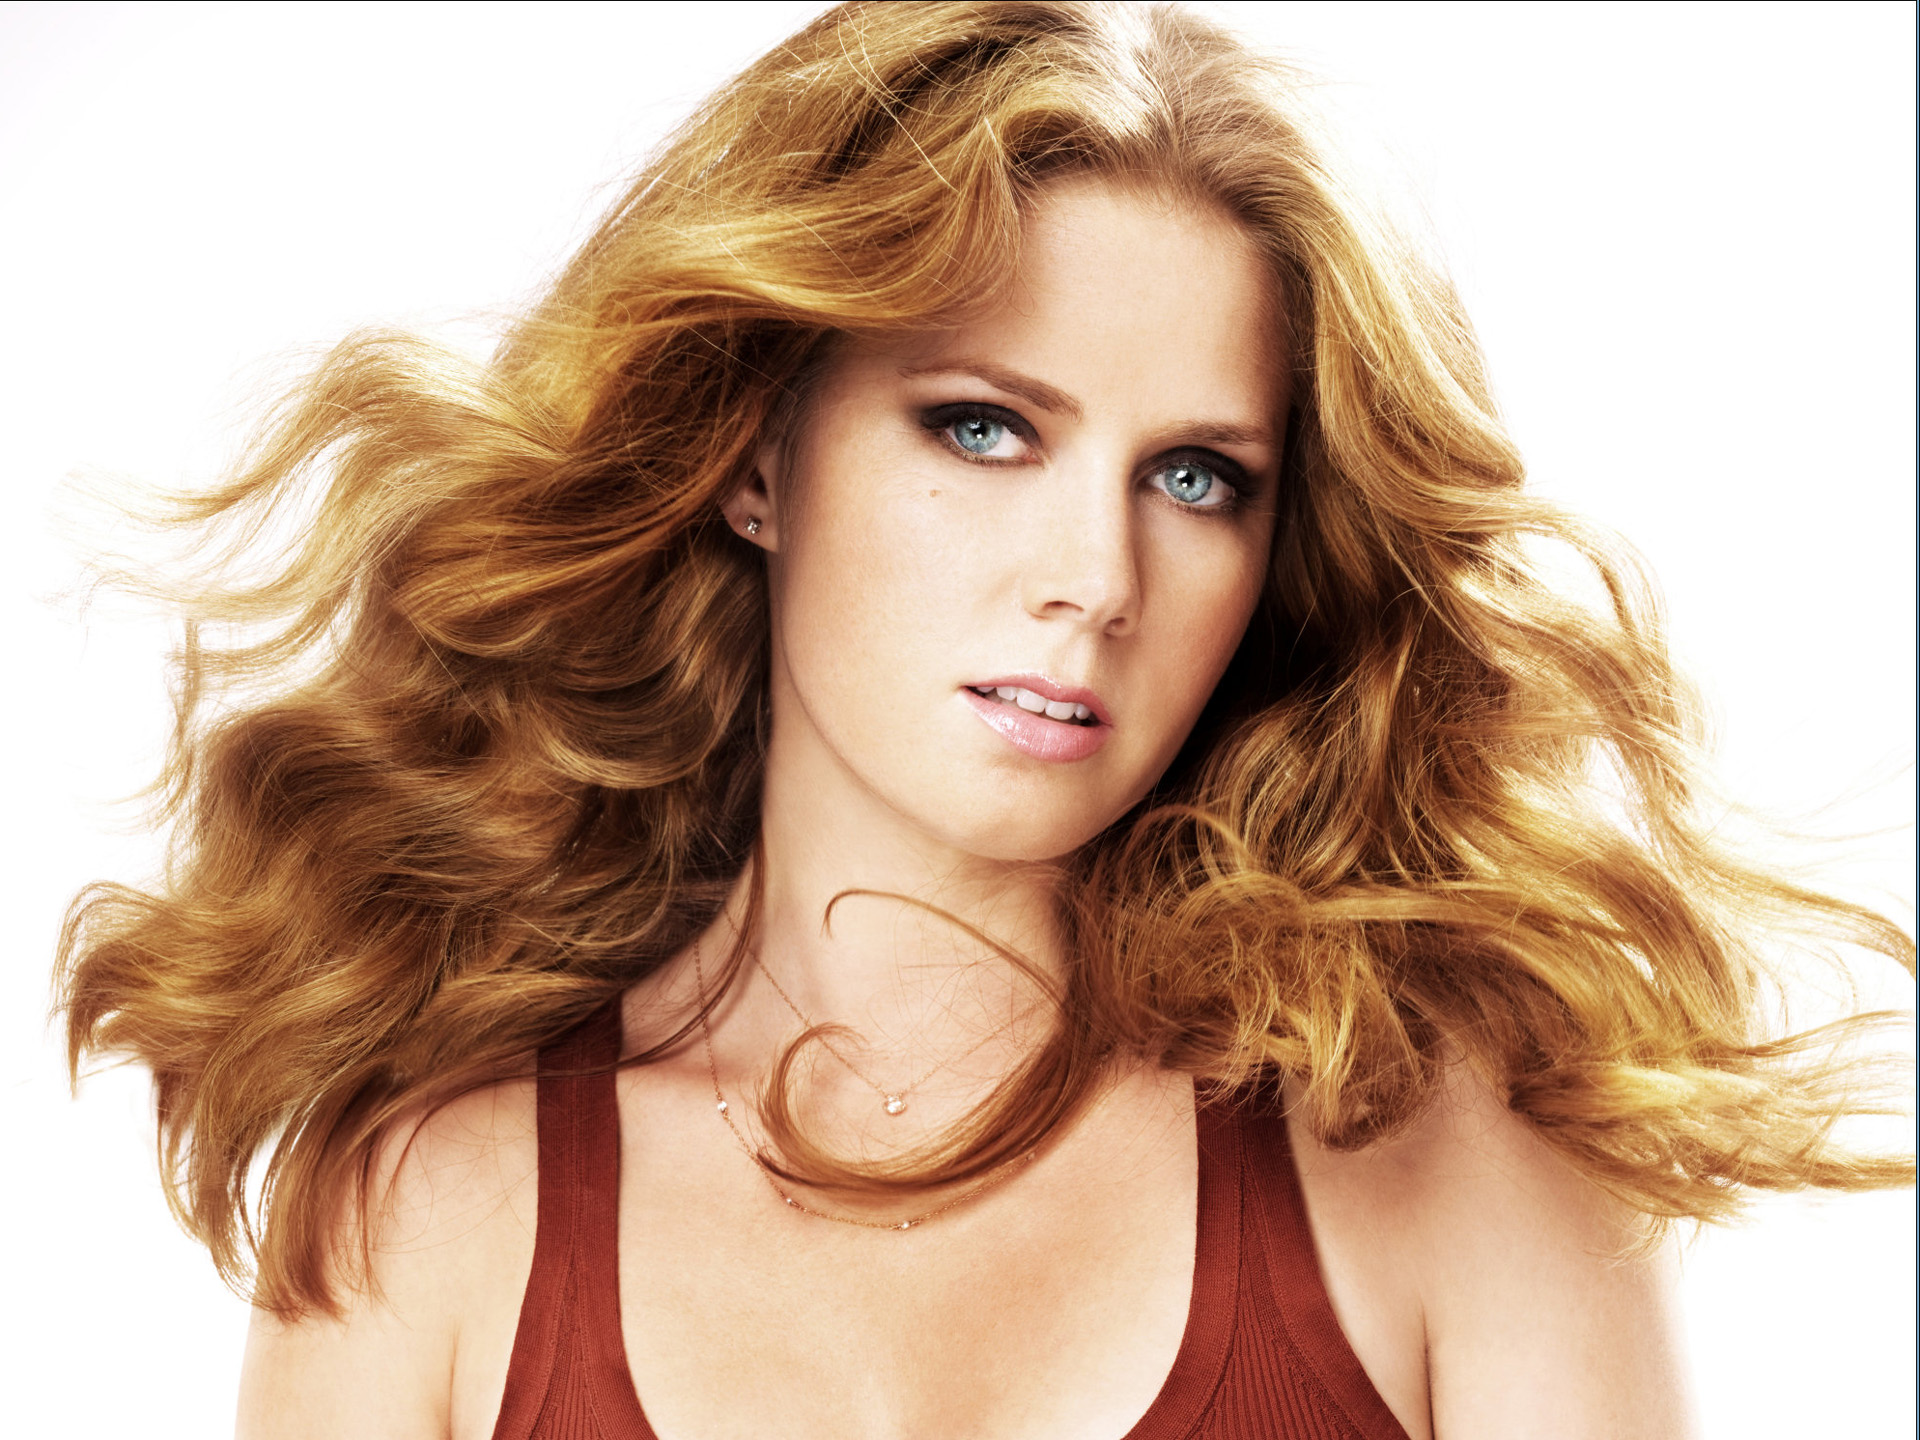 nice amy adams cute face with hair style mobile free background laptop hd photo